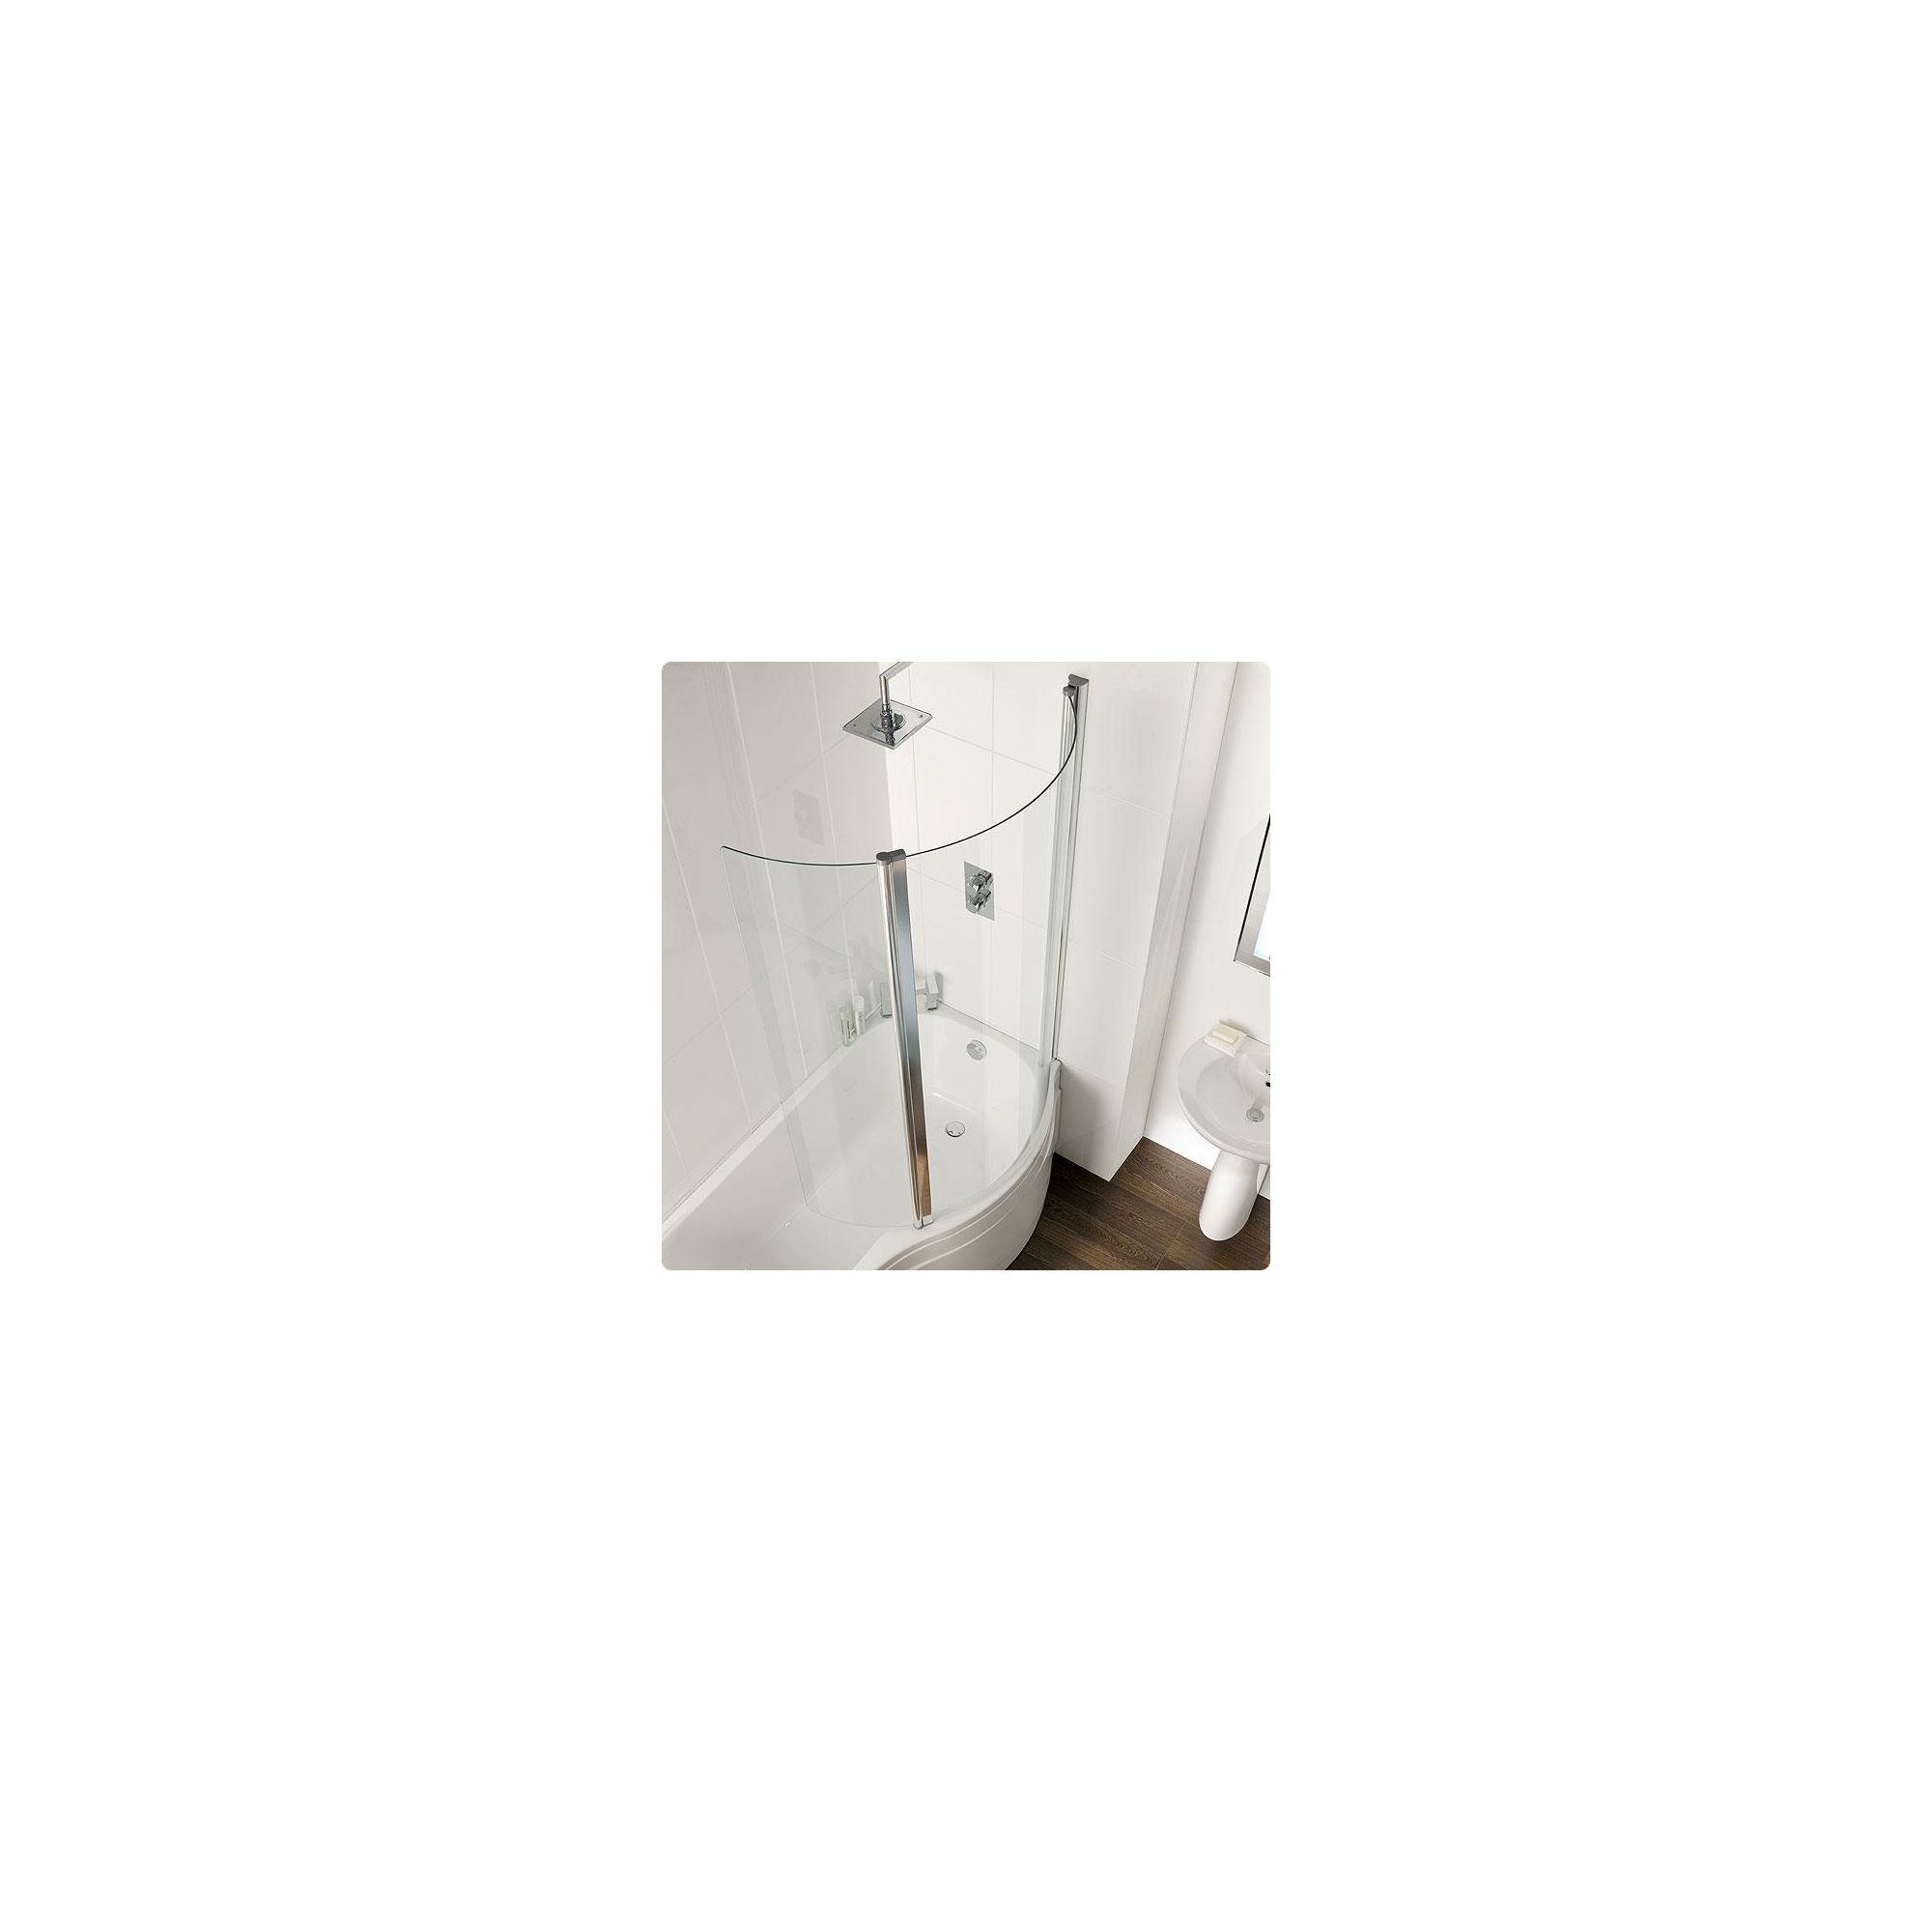 Duchy AUTUMN Curved Showerbath Bath Panel with Hinged Curved Enclosing Panel RIGHT HANDED with Silver Profile (900mm Wide x 1580mm High) at Tesco Direct